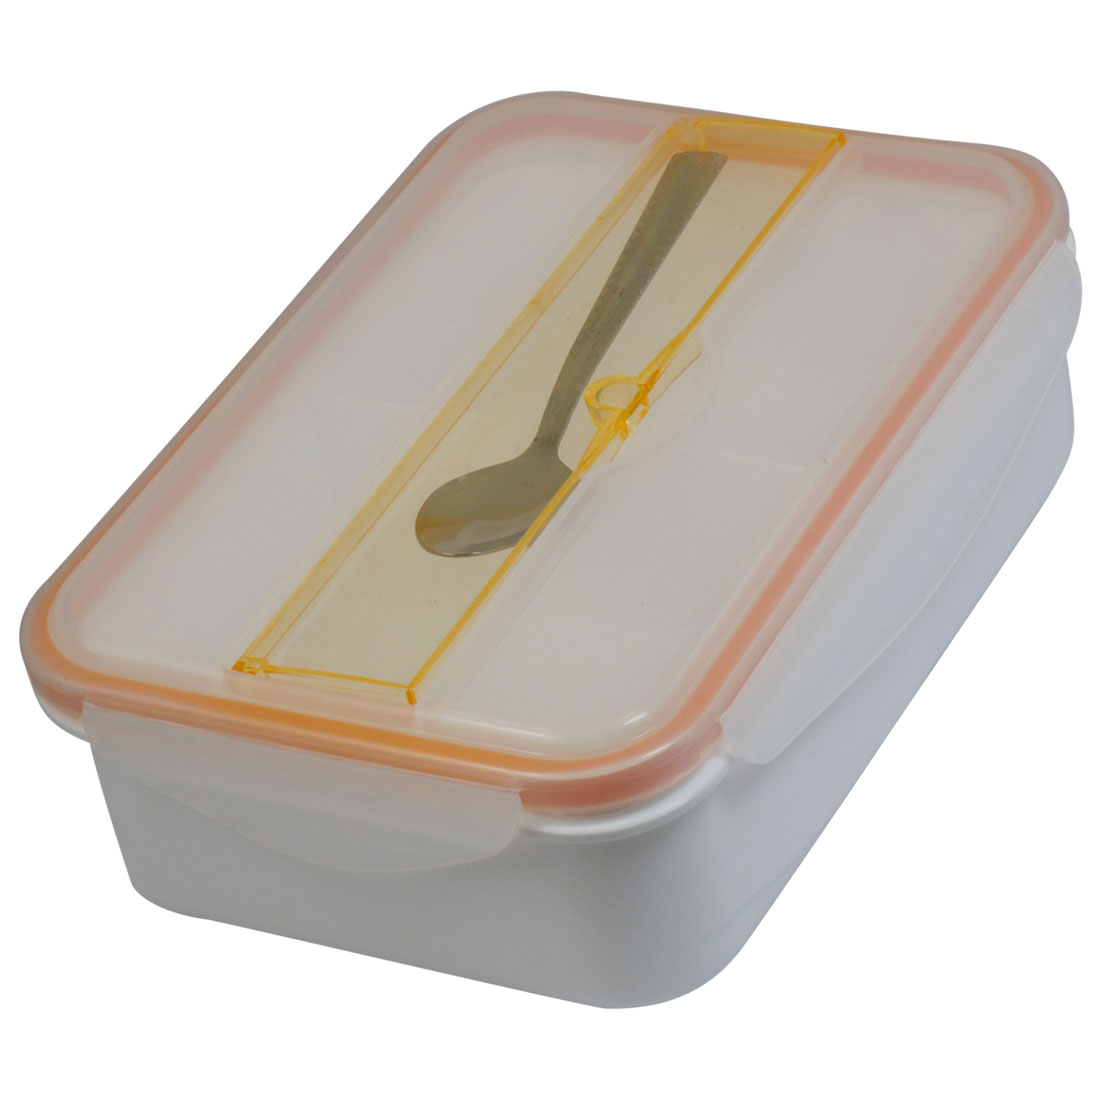 Metal Spoon Rectangle Shape Orange White Clear Plastic Outdoor Dinner Pail